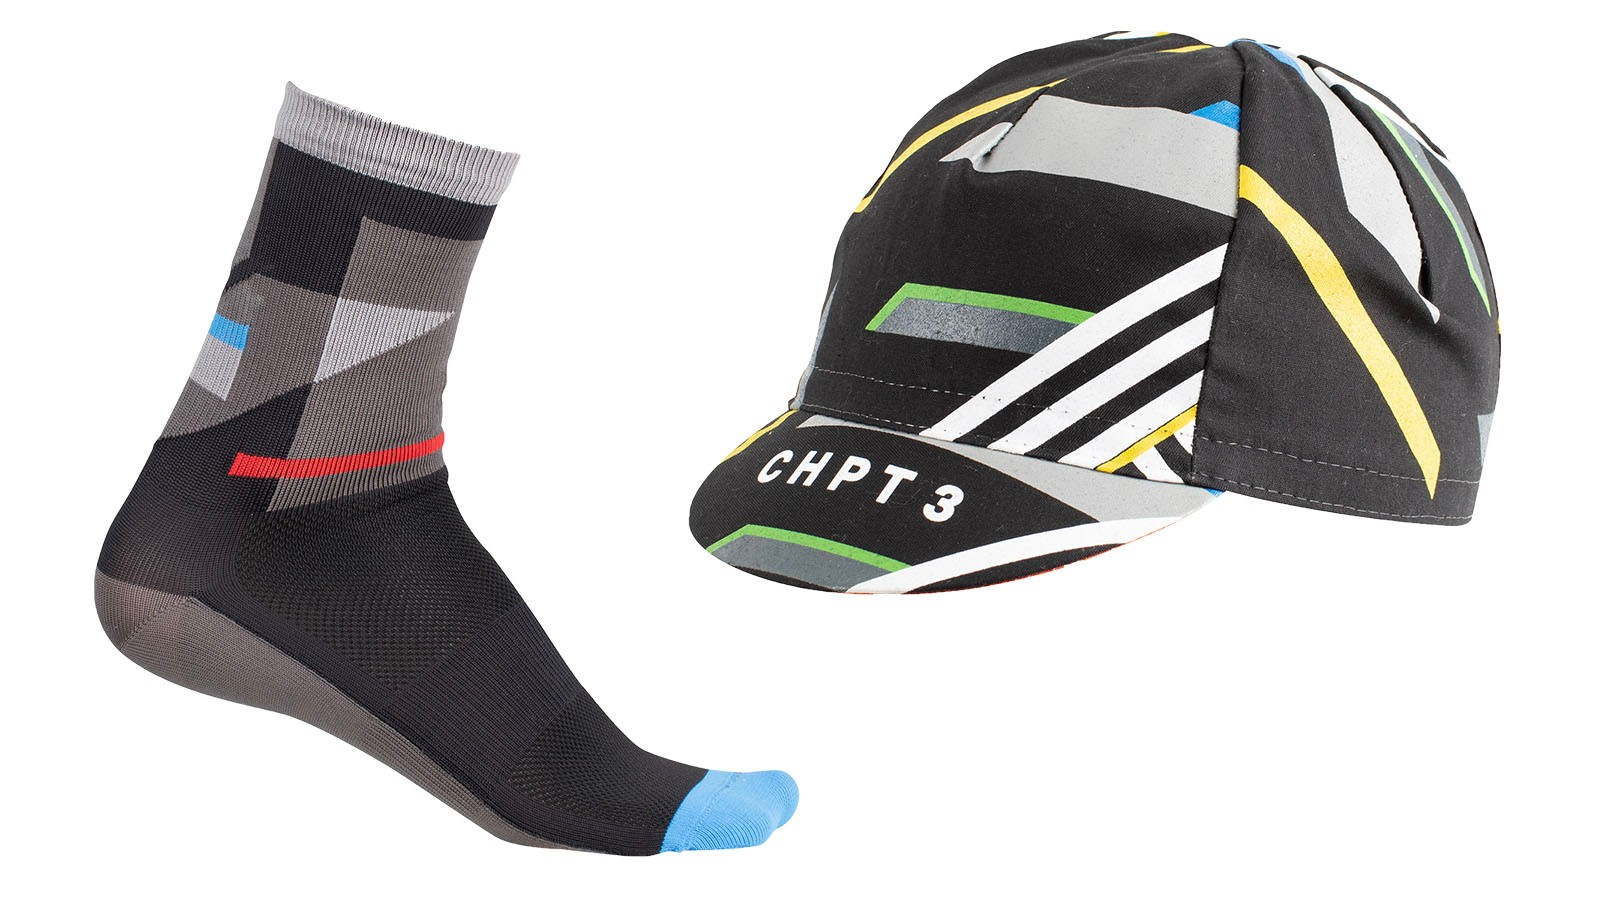 No limited edition kit would be complete without socks and a cap